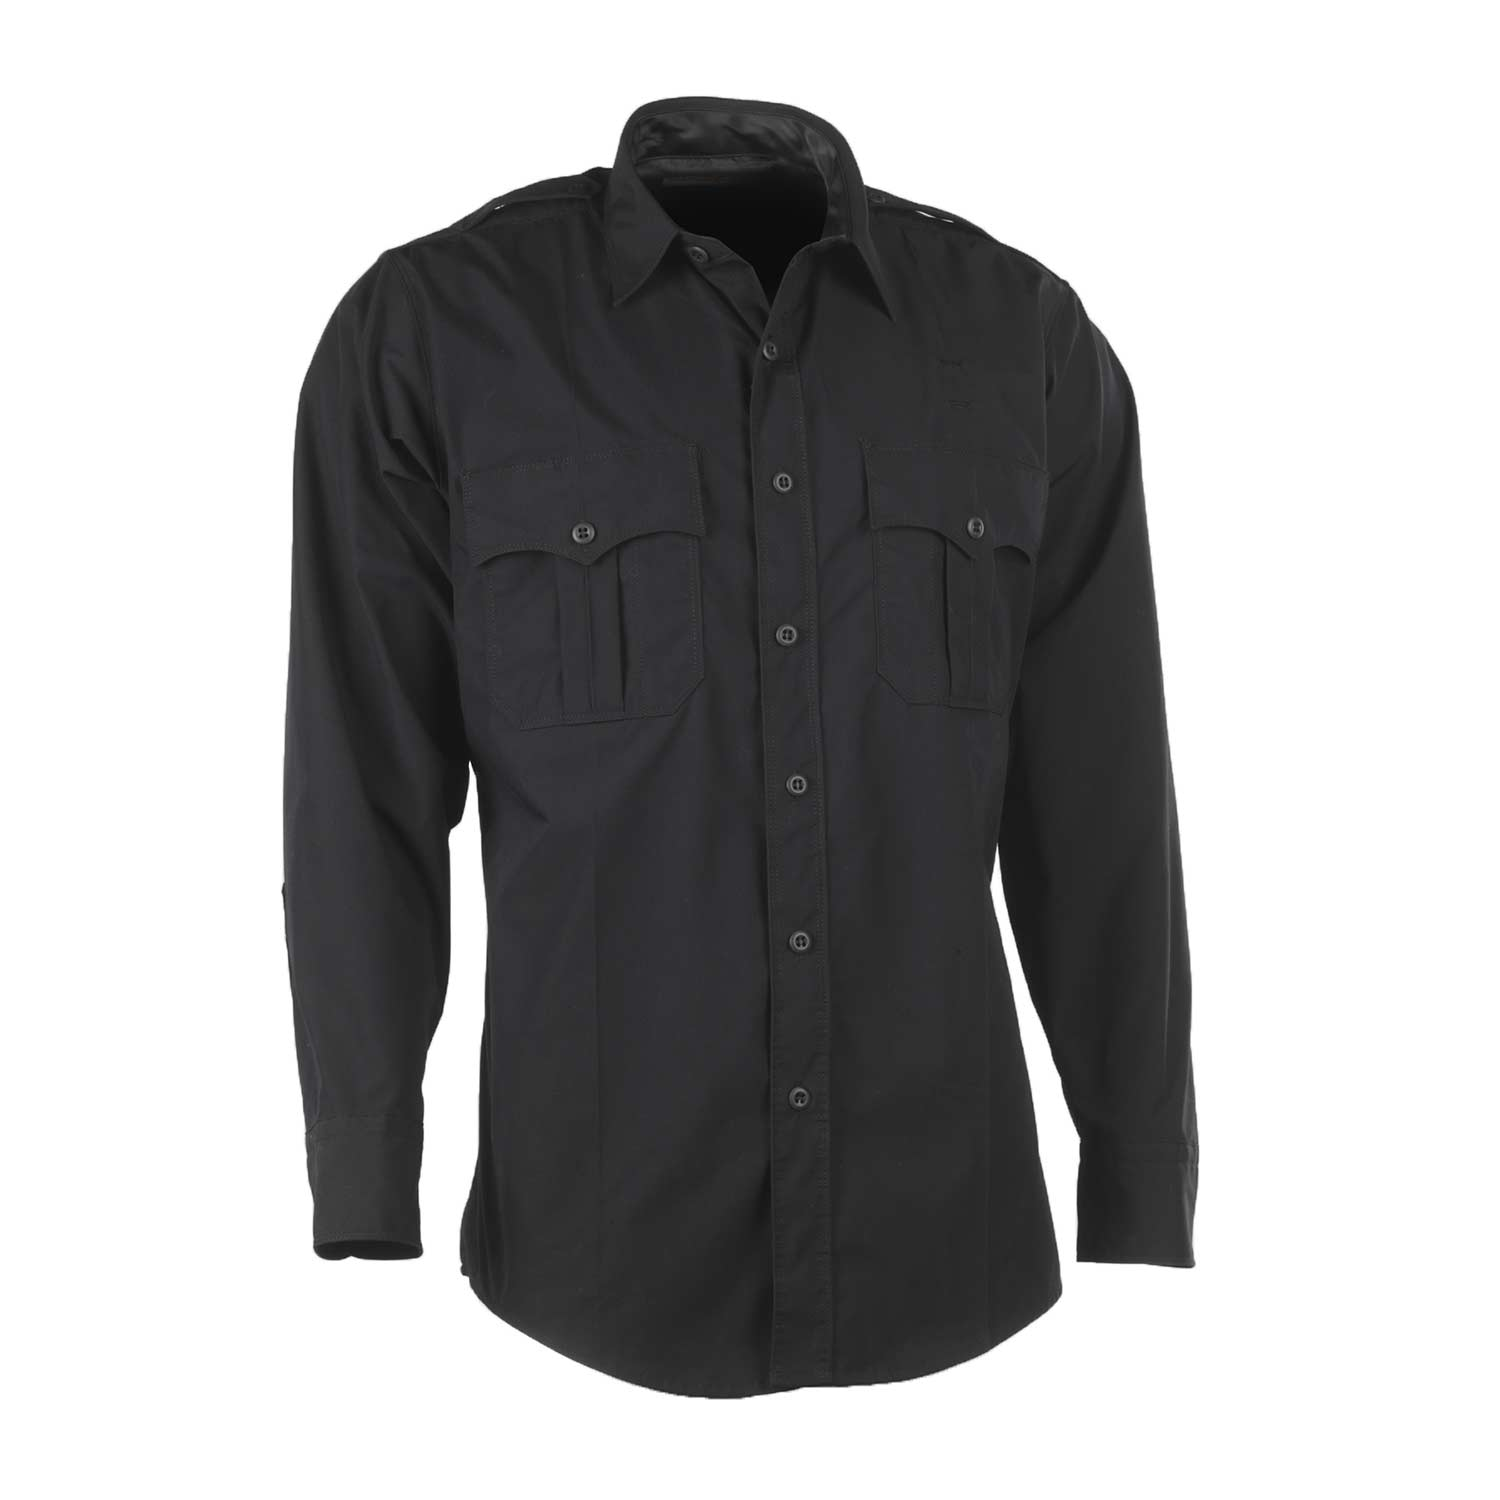 Cross Fx Elite Class A Style Long Sleeve Shirt by Flying Cro